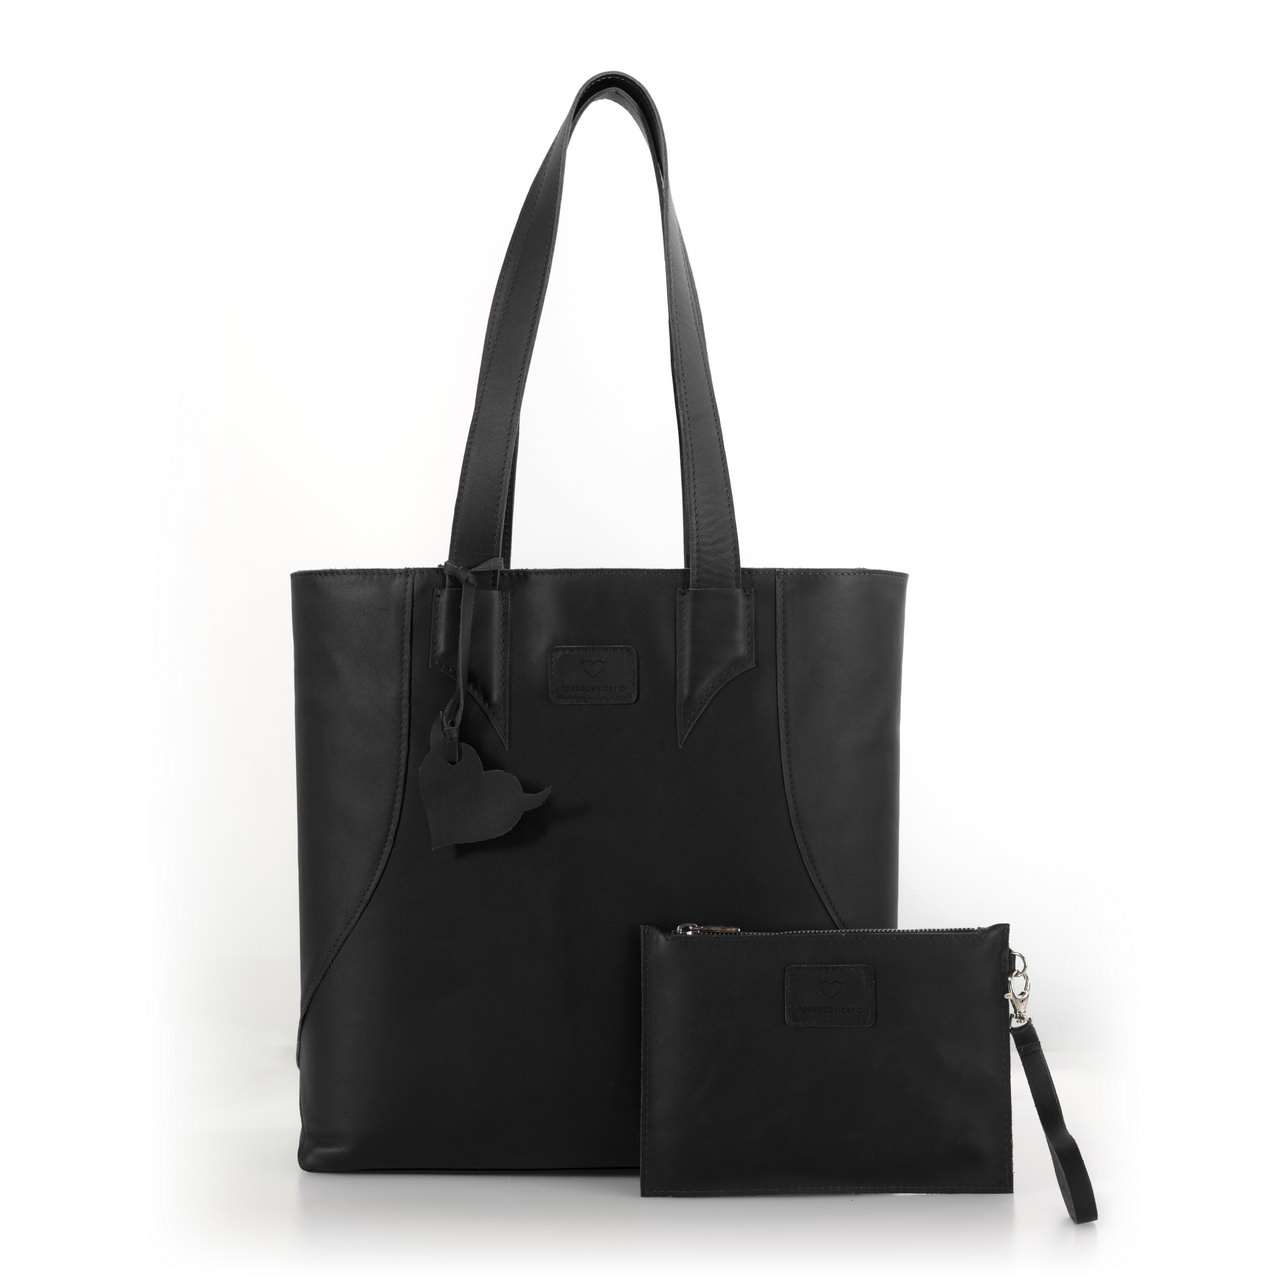 Brava Black, shopper bag made with real leather